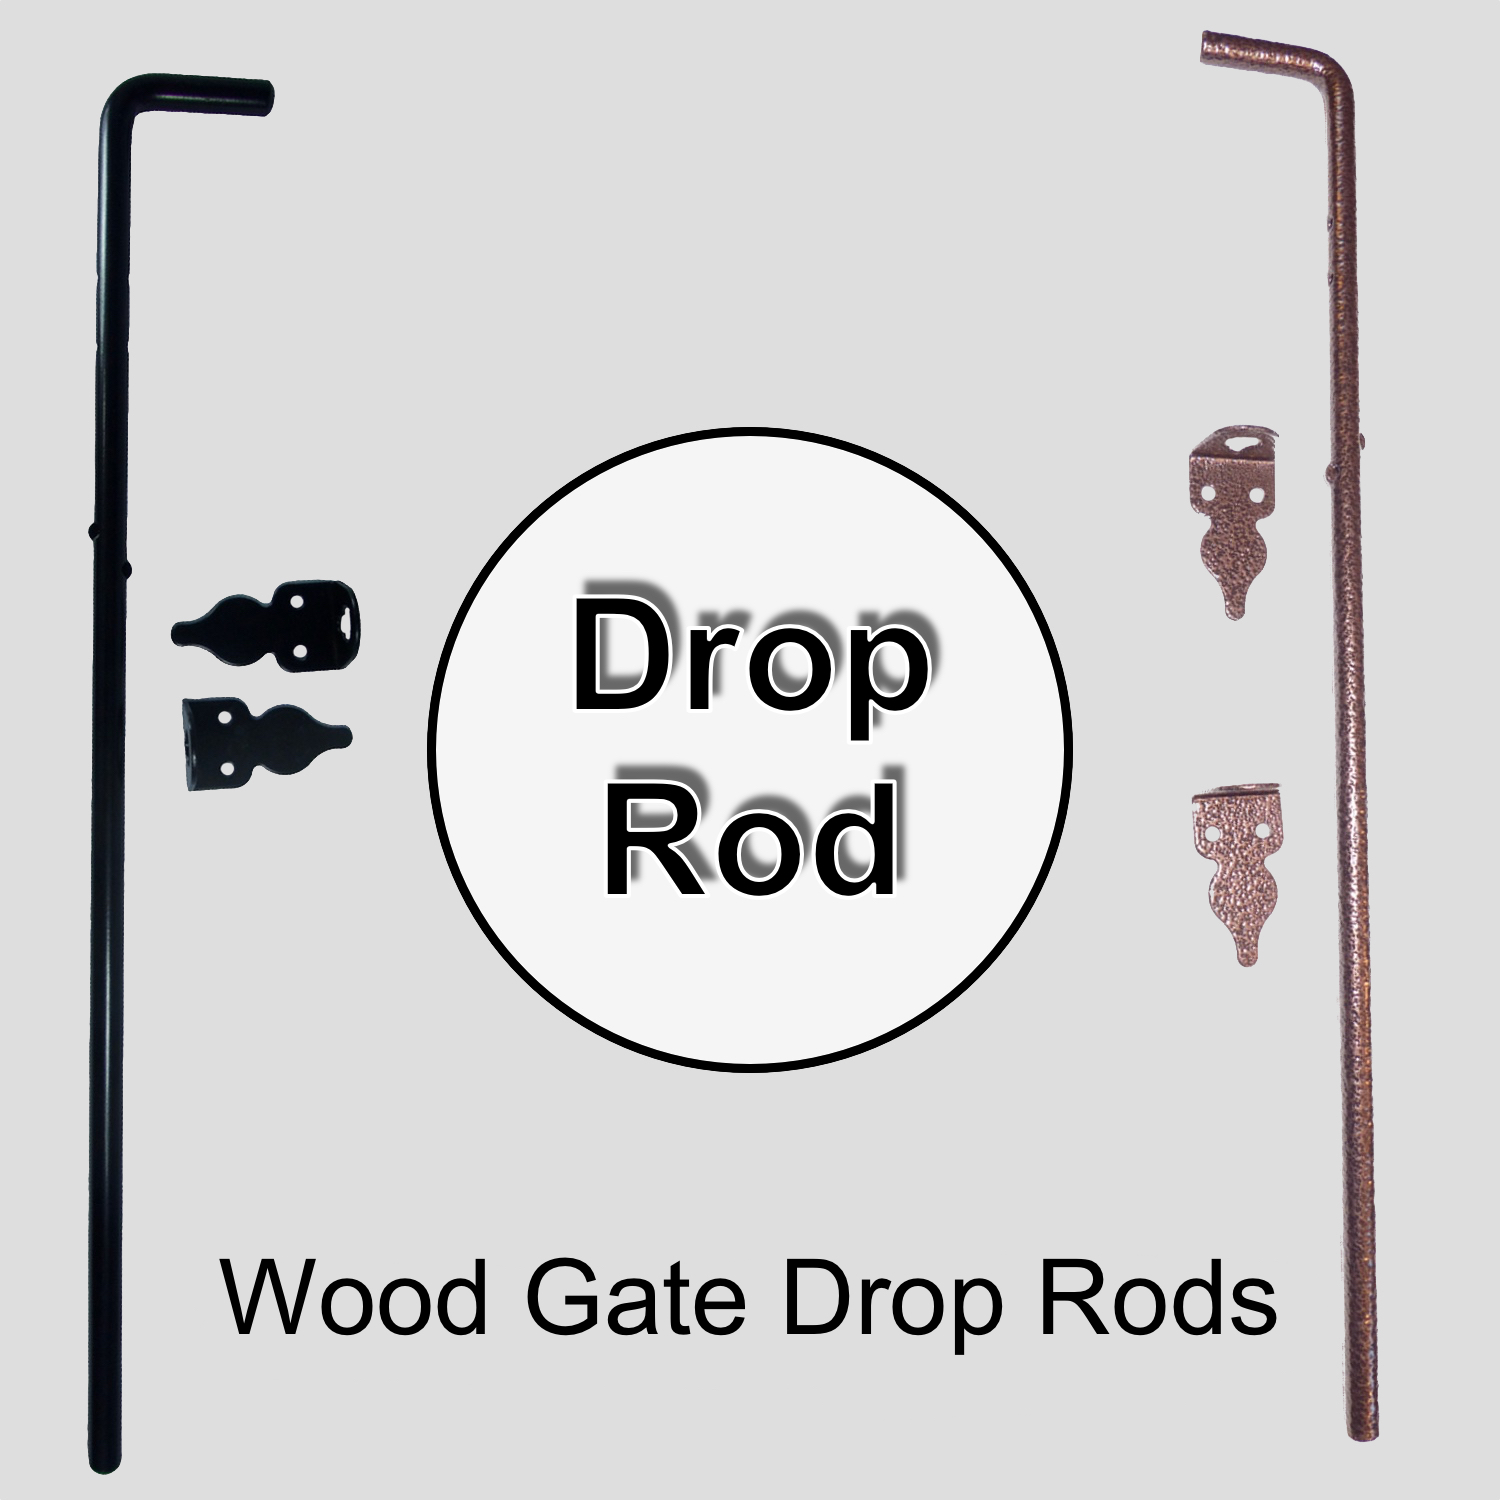 Wood Gate Drop Rods